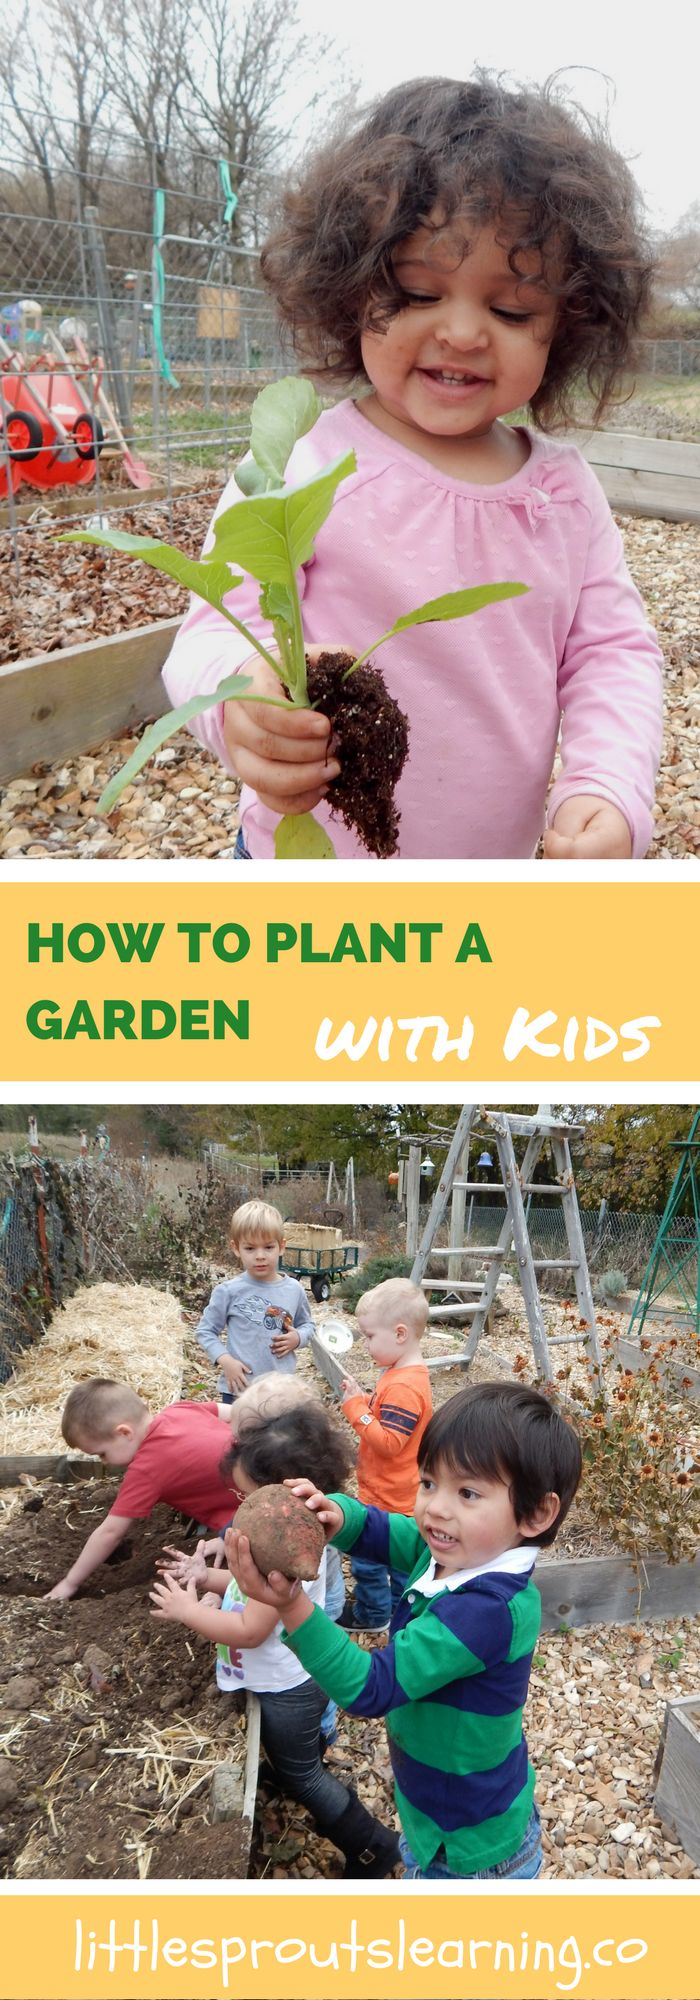 The garden is a wonderful place for kids to learn, but how in the world do I plant a garden that kids work in and eat from? It can be a challenge.